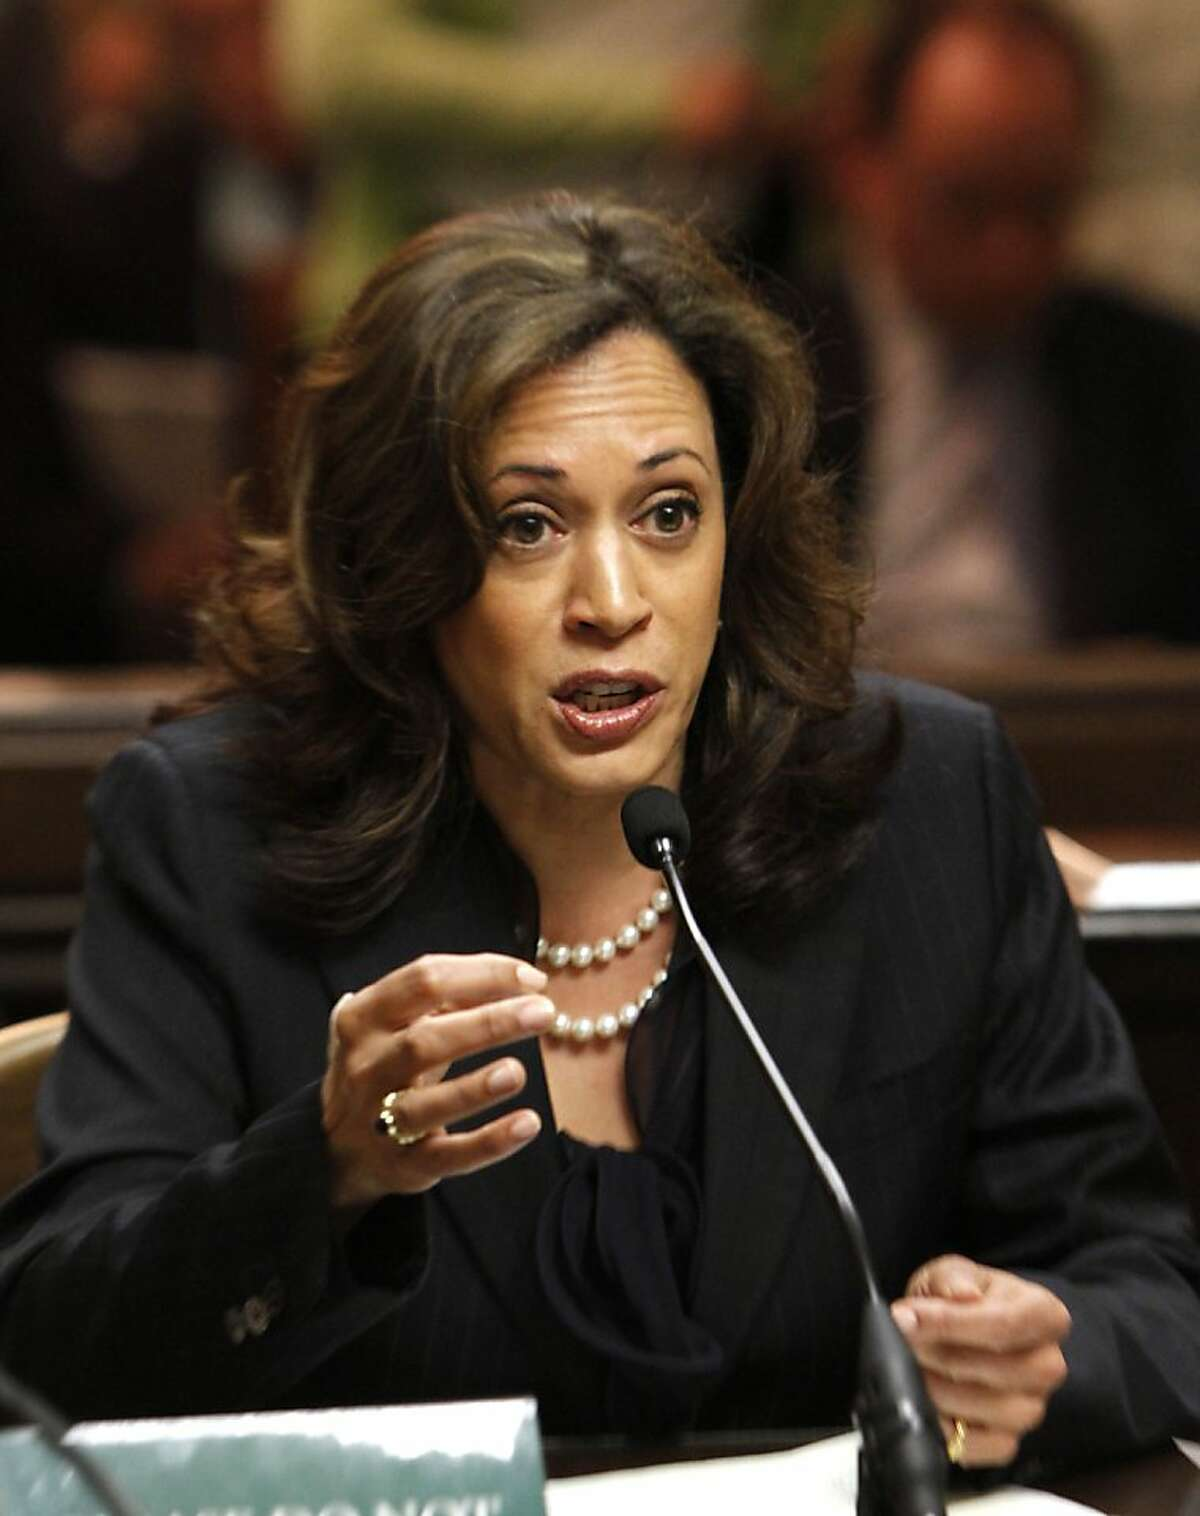 State Attorney General Kamala Harris may be in line for the top job at Justice.